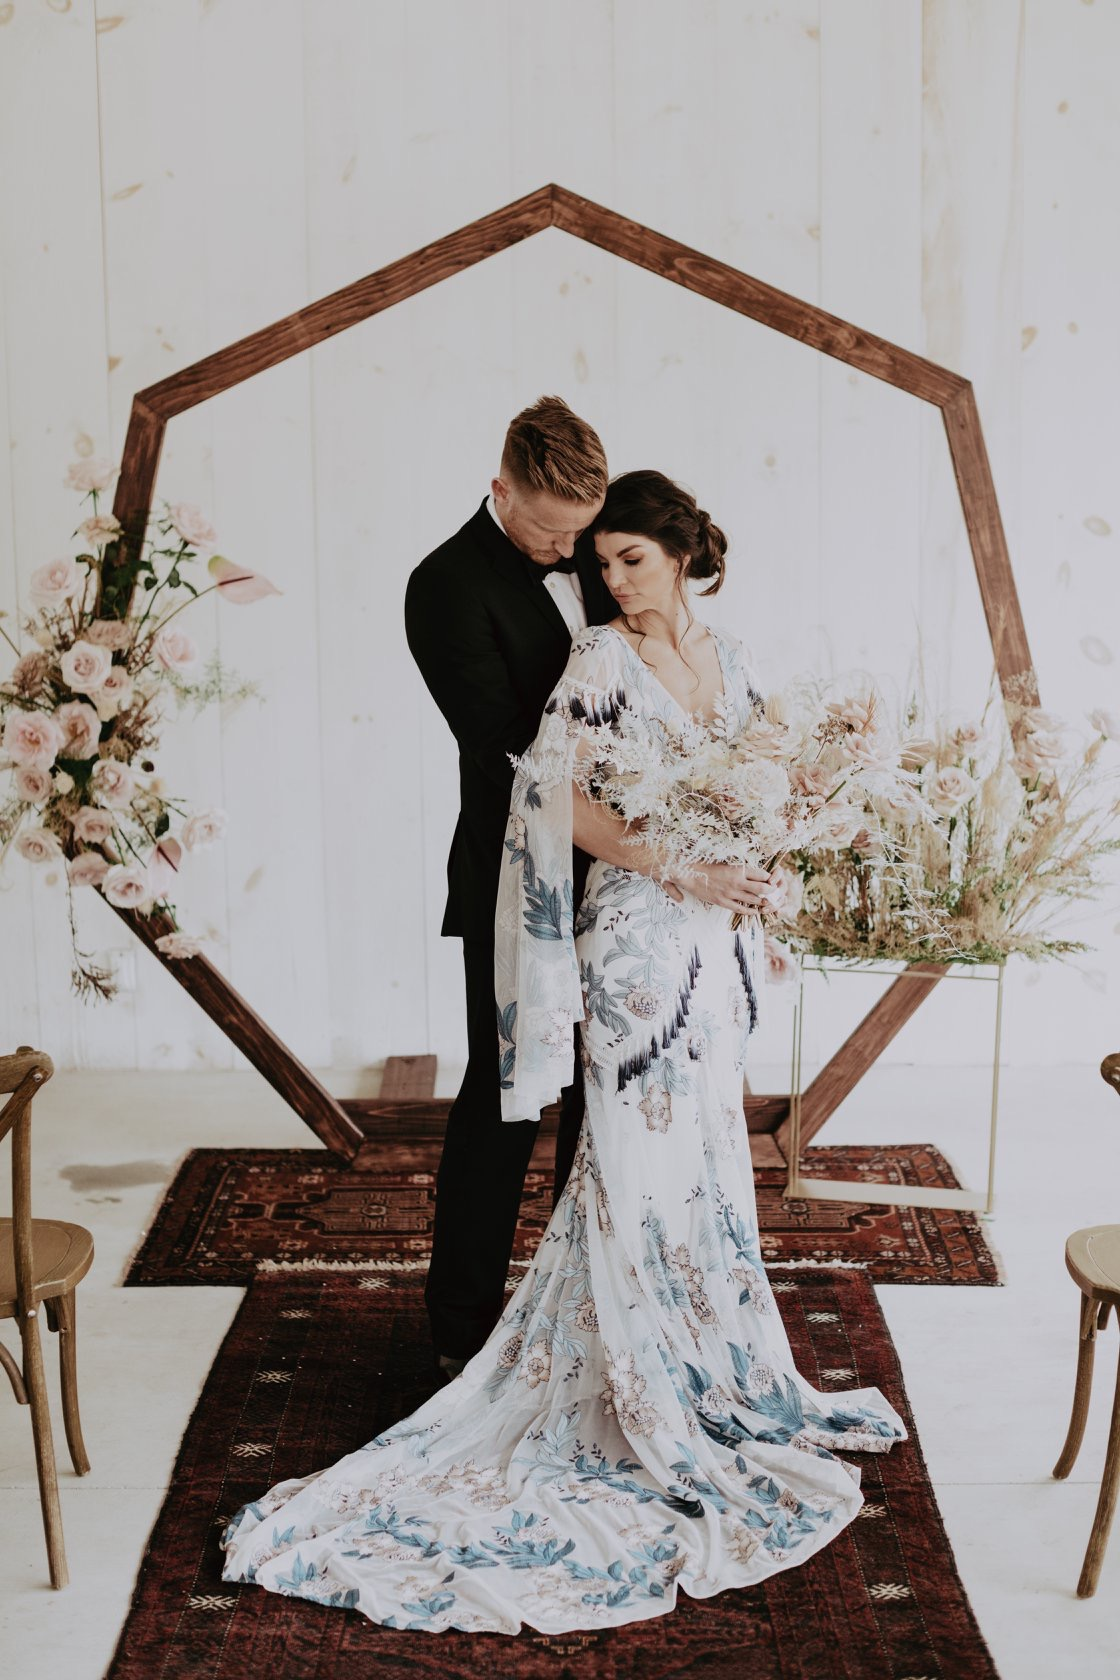 Geometric Backdrop Ceremony Space by The Copper Quail